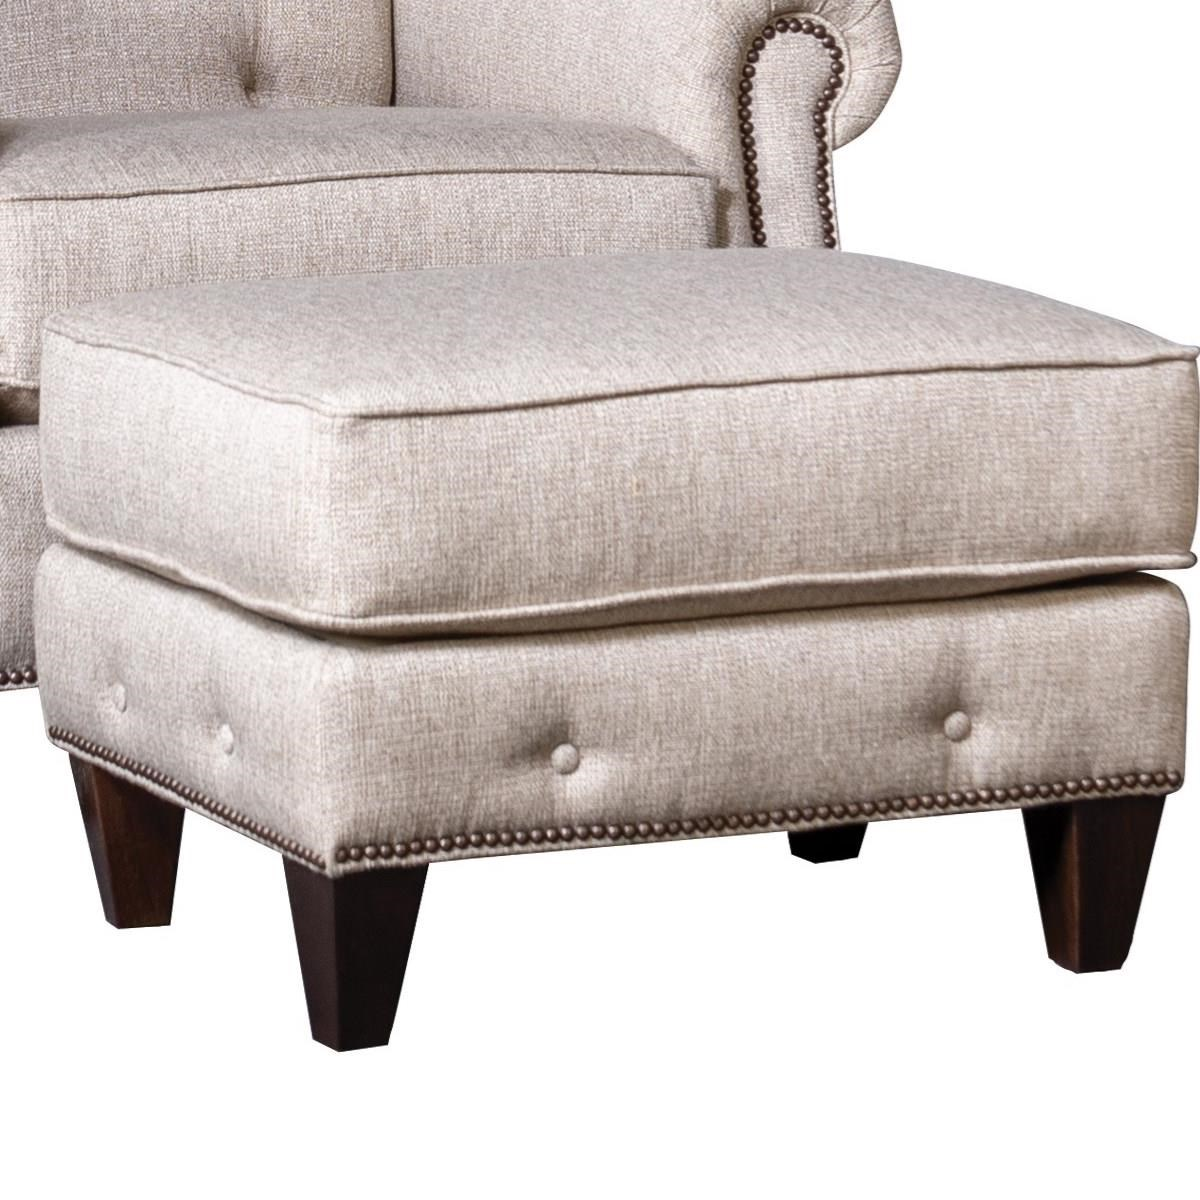 2262 Ottoman by Mayo at Wilson's Furniture